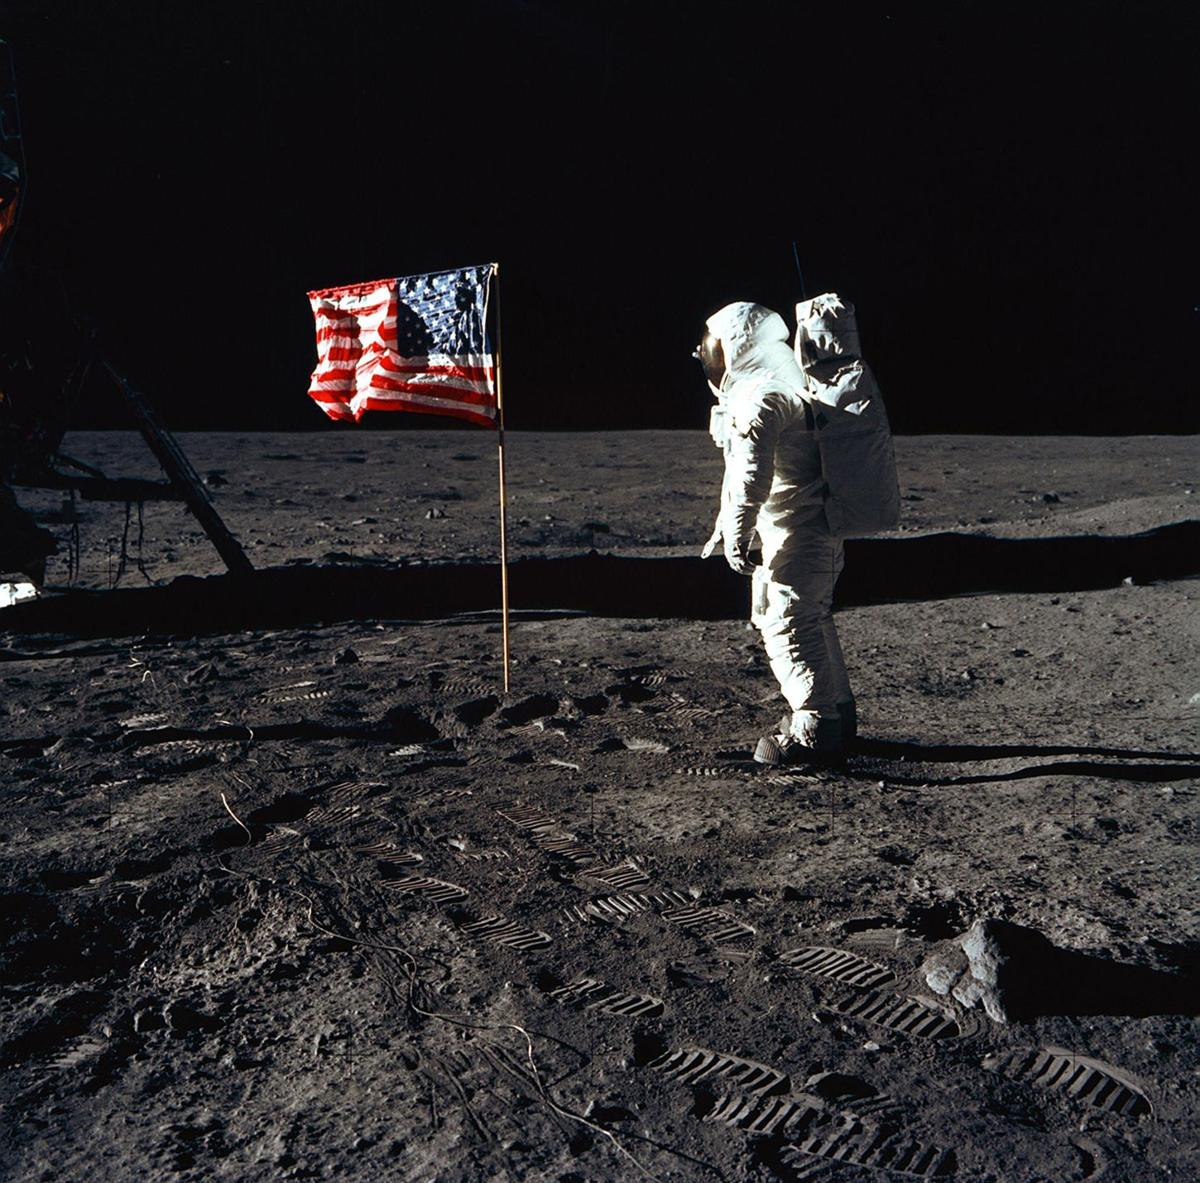 Astronaut Buzz Aldrin stands on the moon during the Apollo 11 mission on July 20, 1969. Aldrin and fellow astronaut Neil Armstrong were the first men to walk on the lunar surface, a milestone being marked this summer by 50th anniversary celebrations across the country.